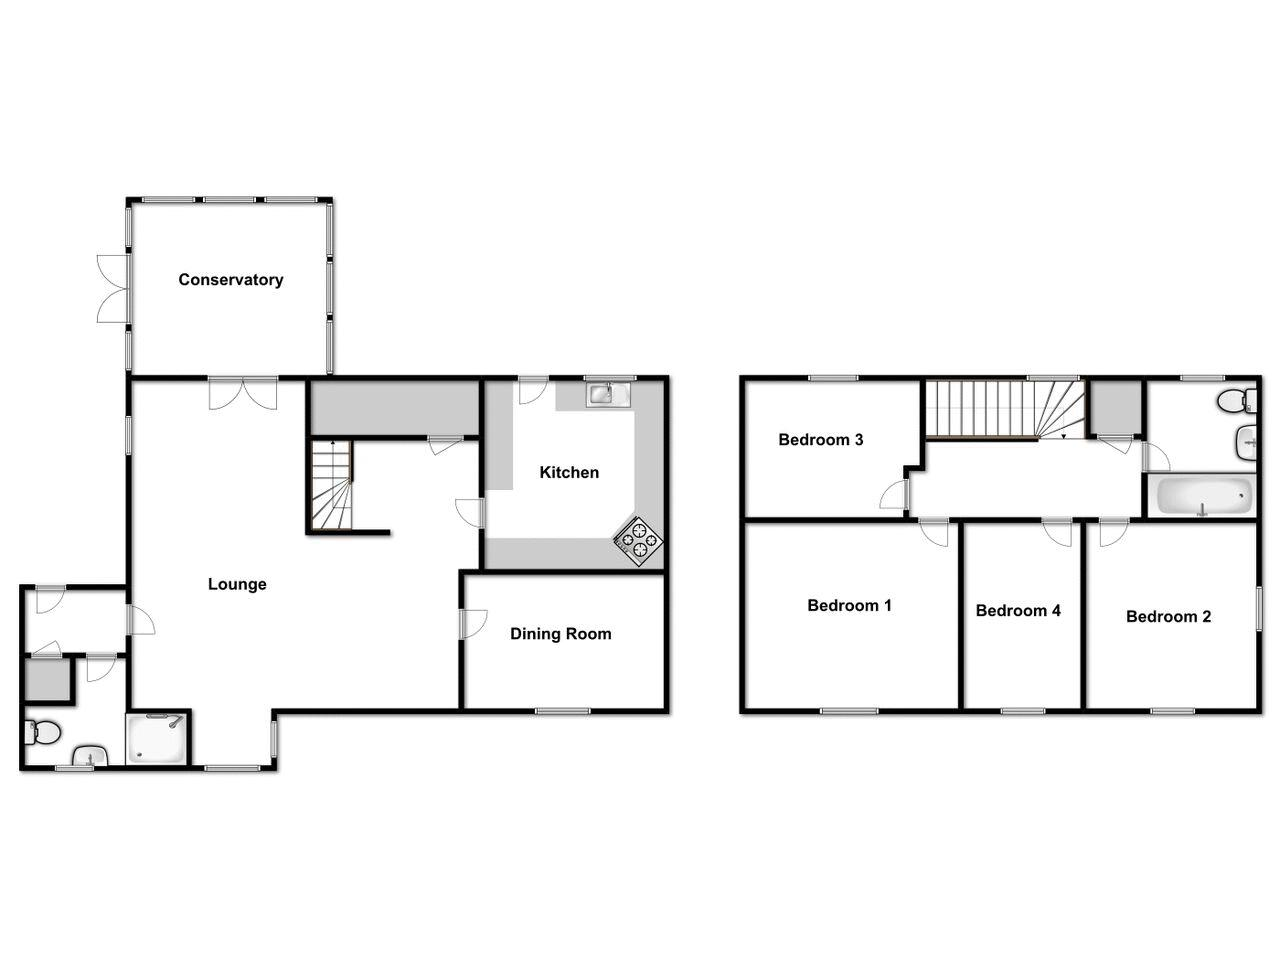 Inchbonnie Road, Chelmsford floor plan